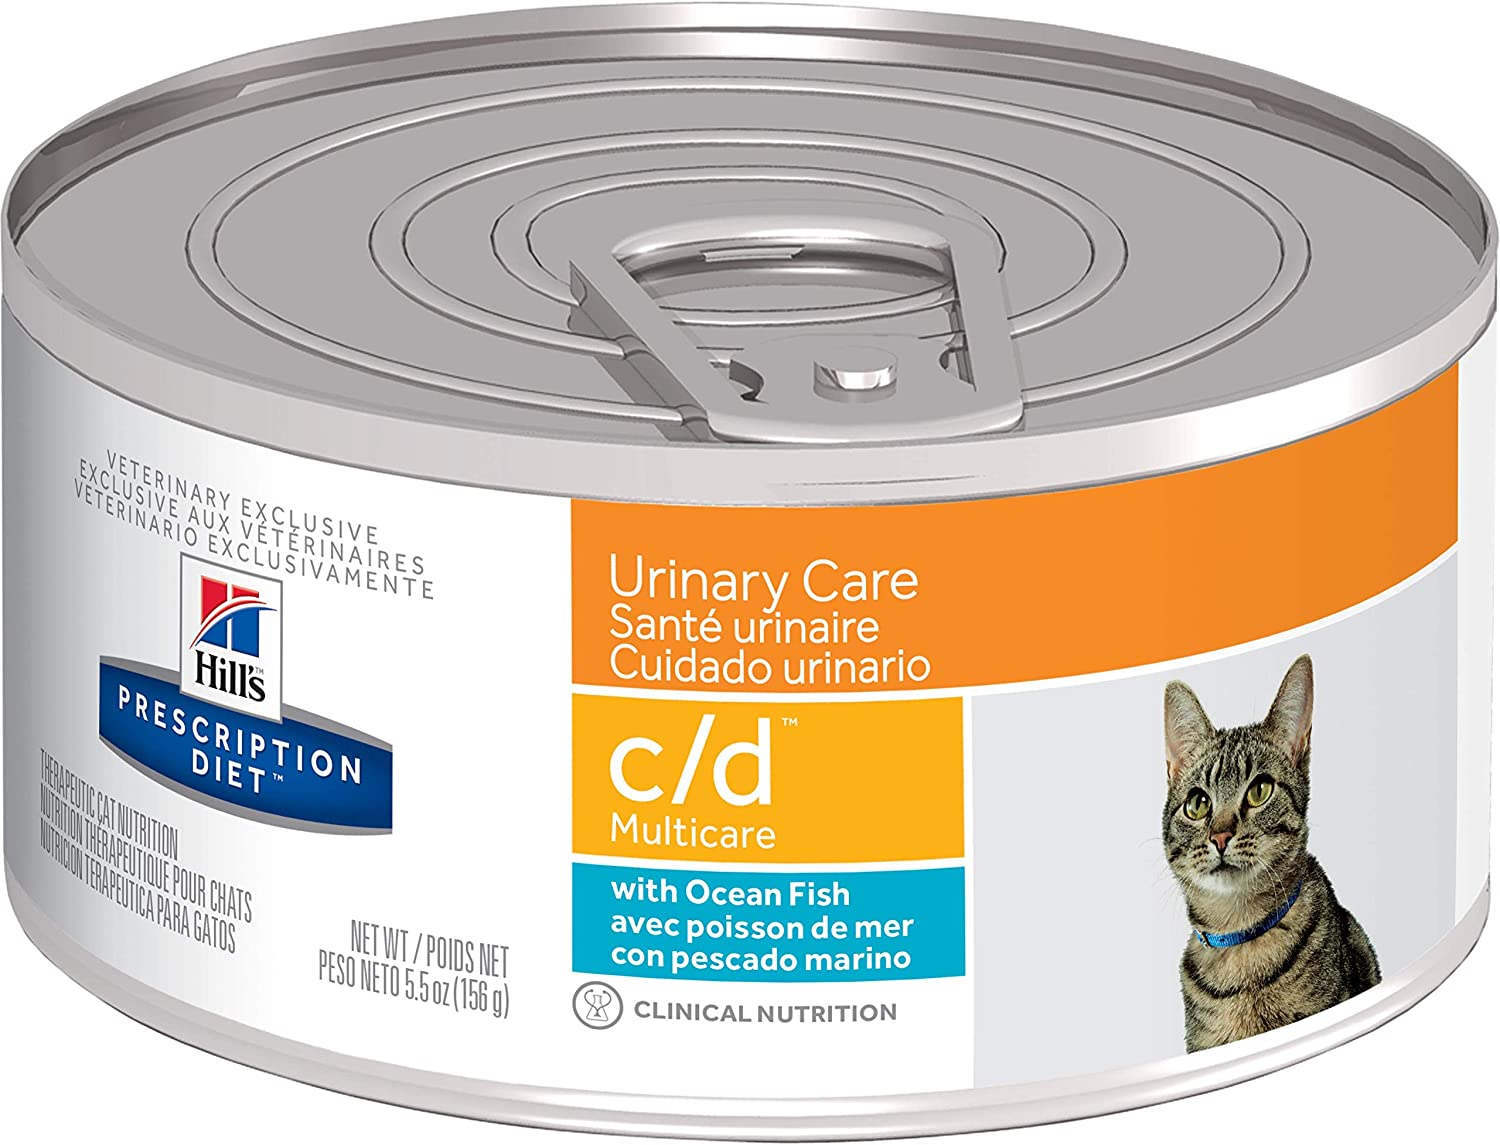 Hill's Prescription Diet c/d Multicare Urinary Care with Ocean Fish Cat Food